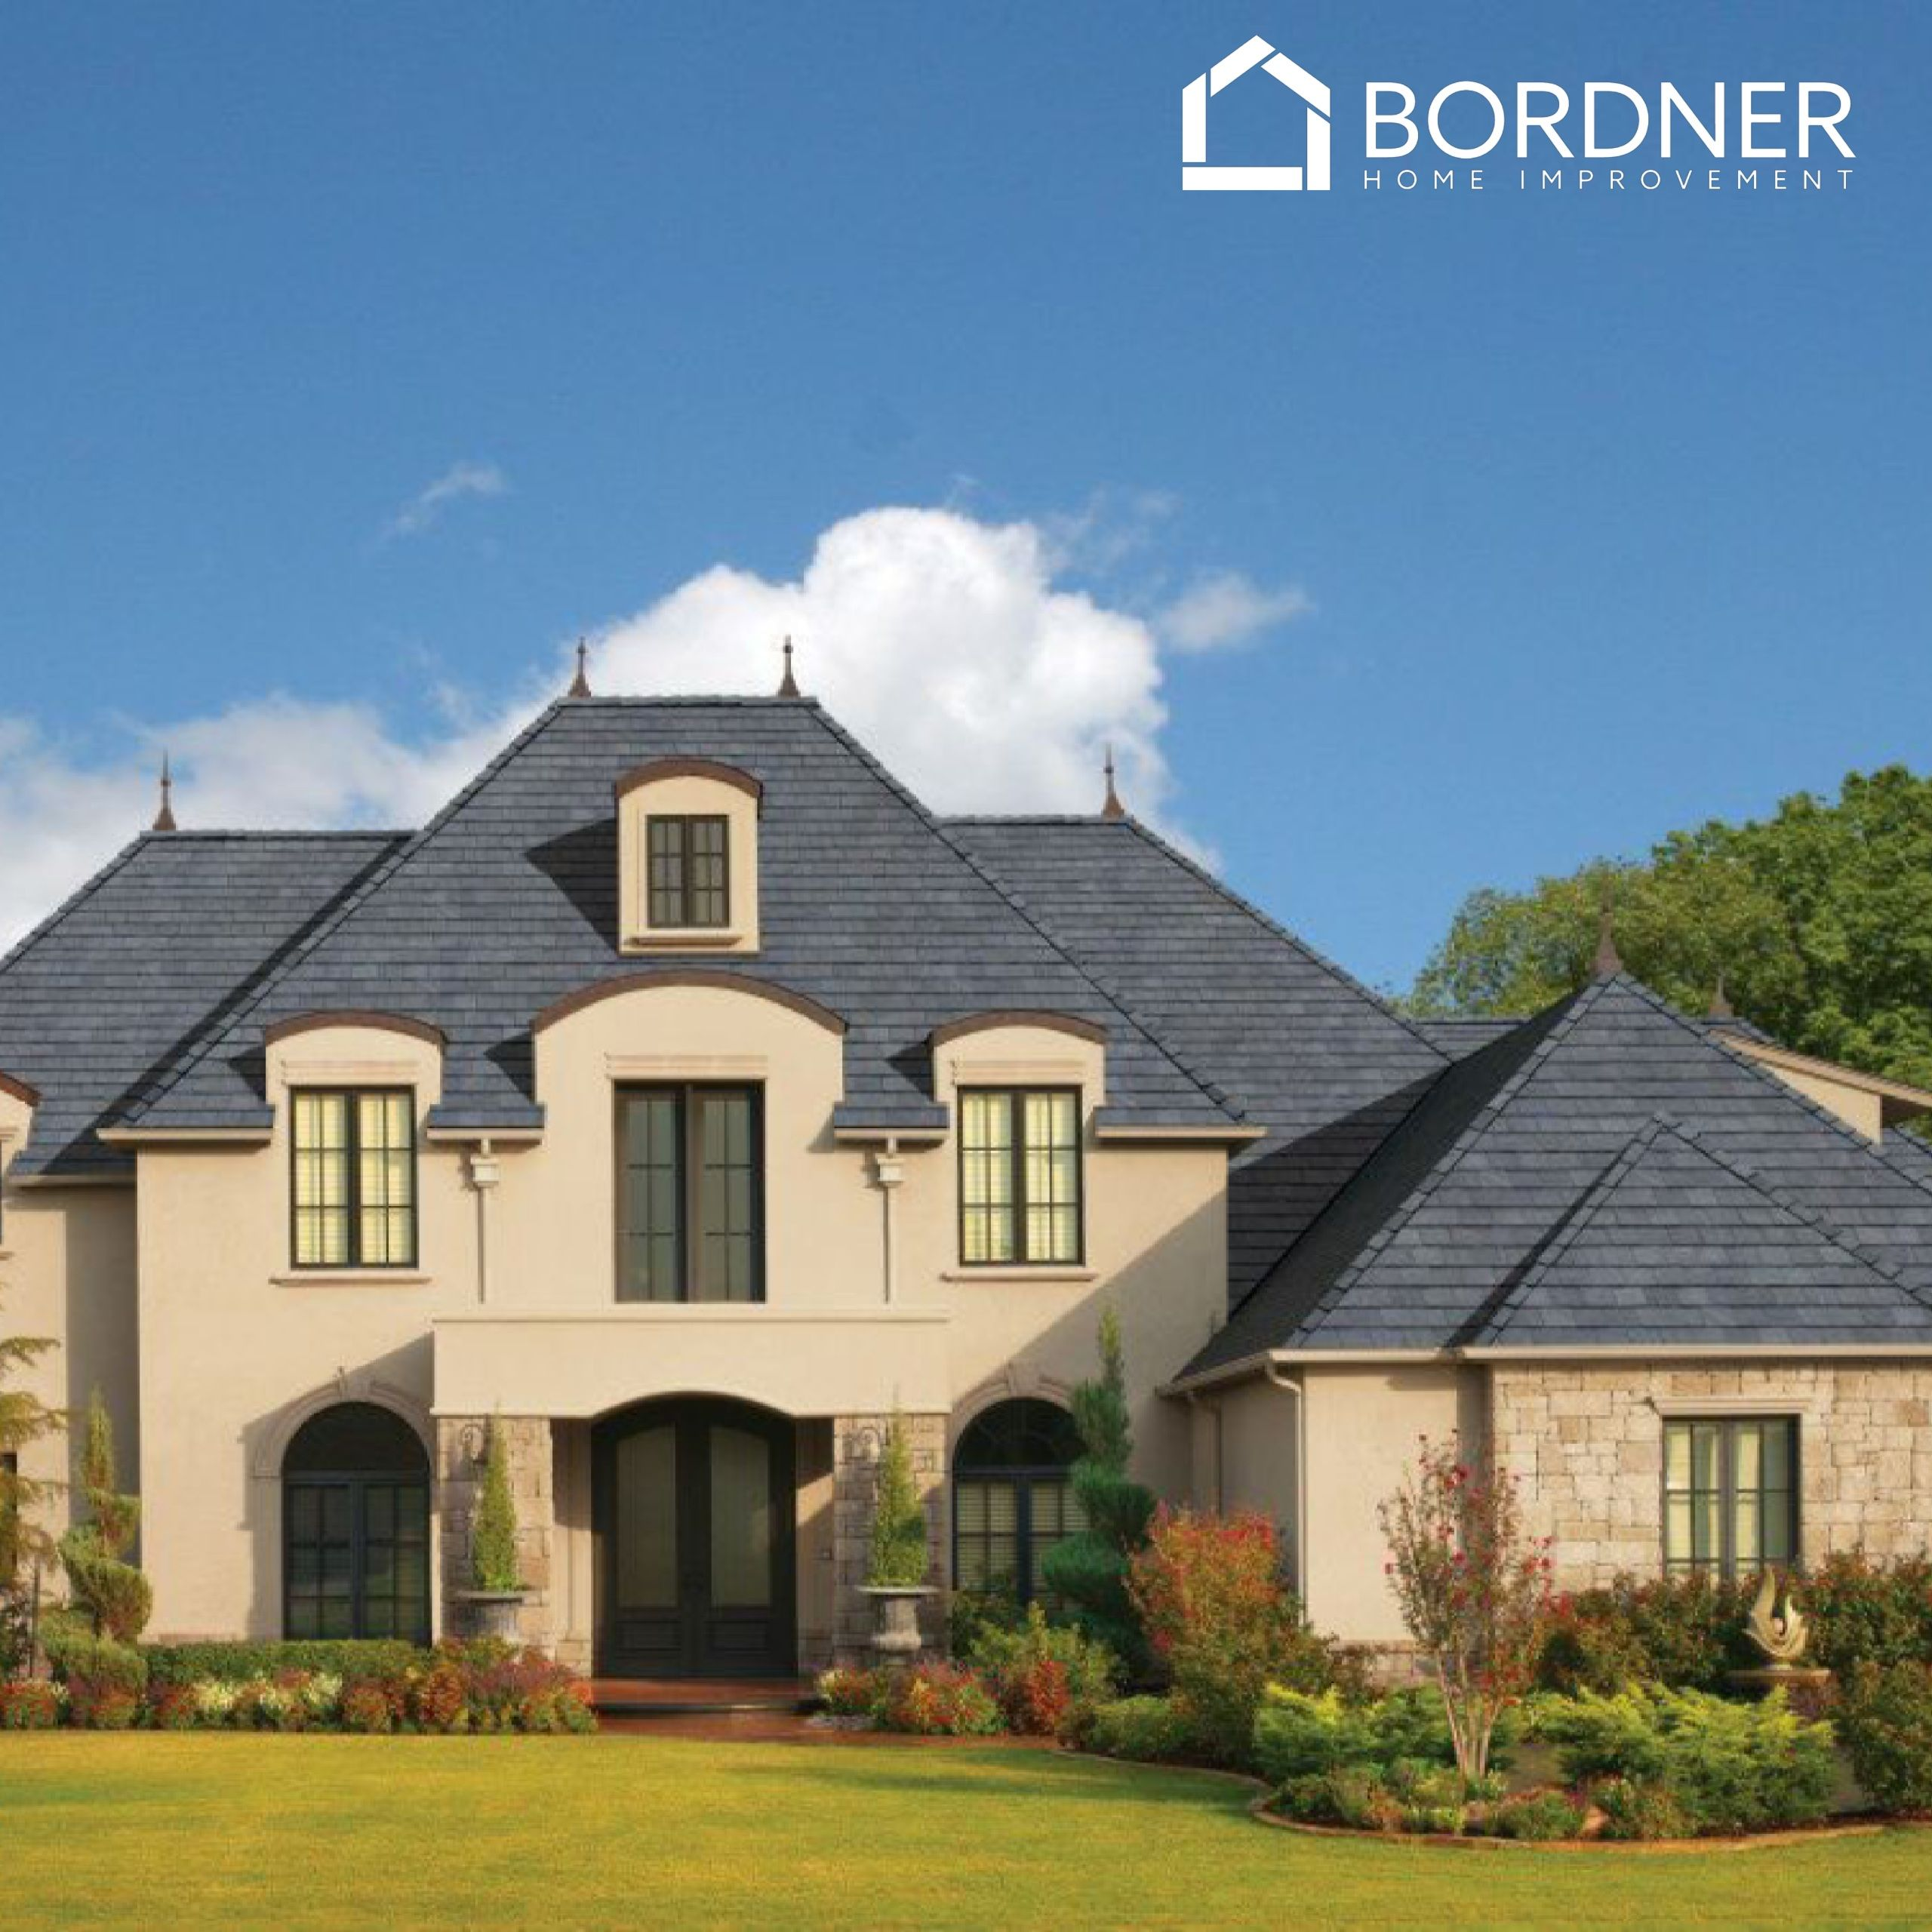 Roofing Kcmo Remodelers Roofing Contractors Roofing Roof Shingles